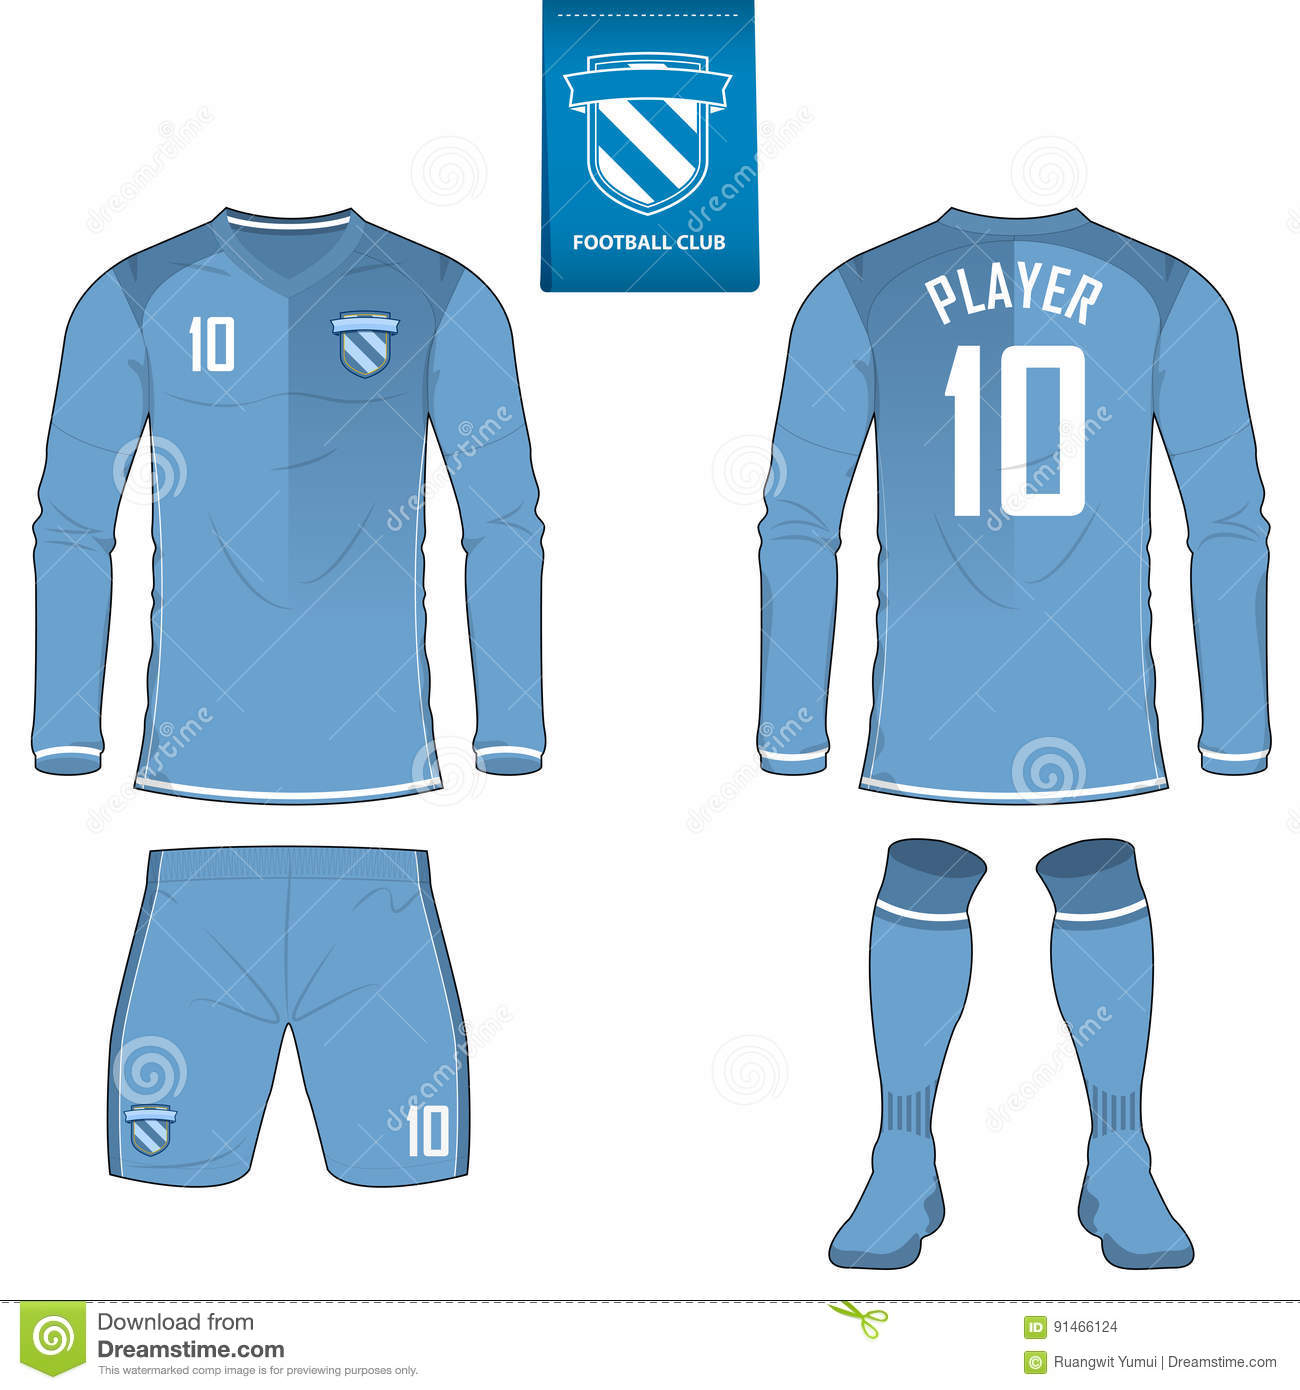 2a94f5340c0 Soccer kit or football jersey template for football club. Long sleeve football  shirt mock up. Front and back view soccer uniform.